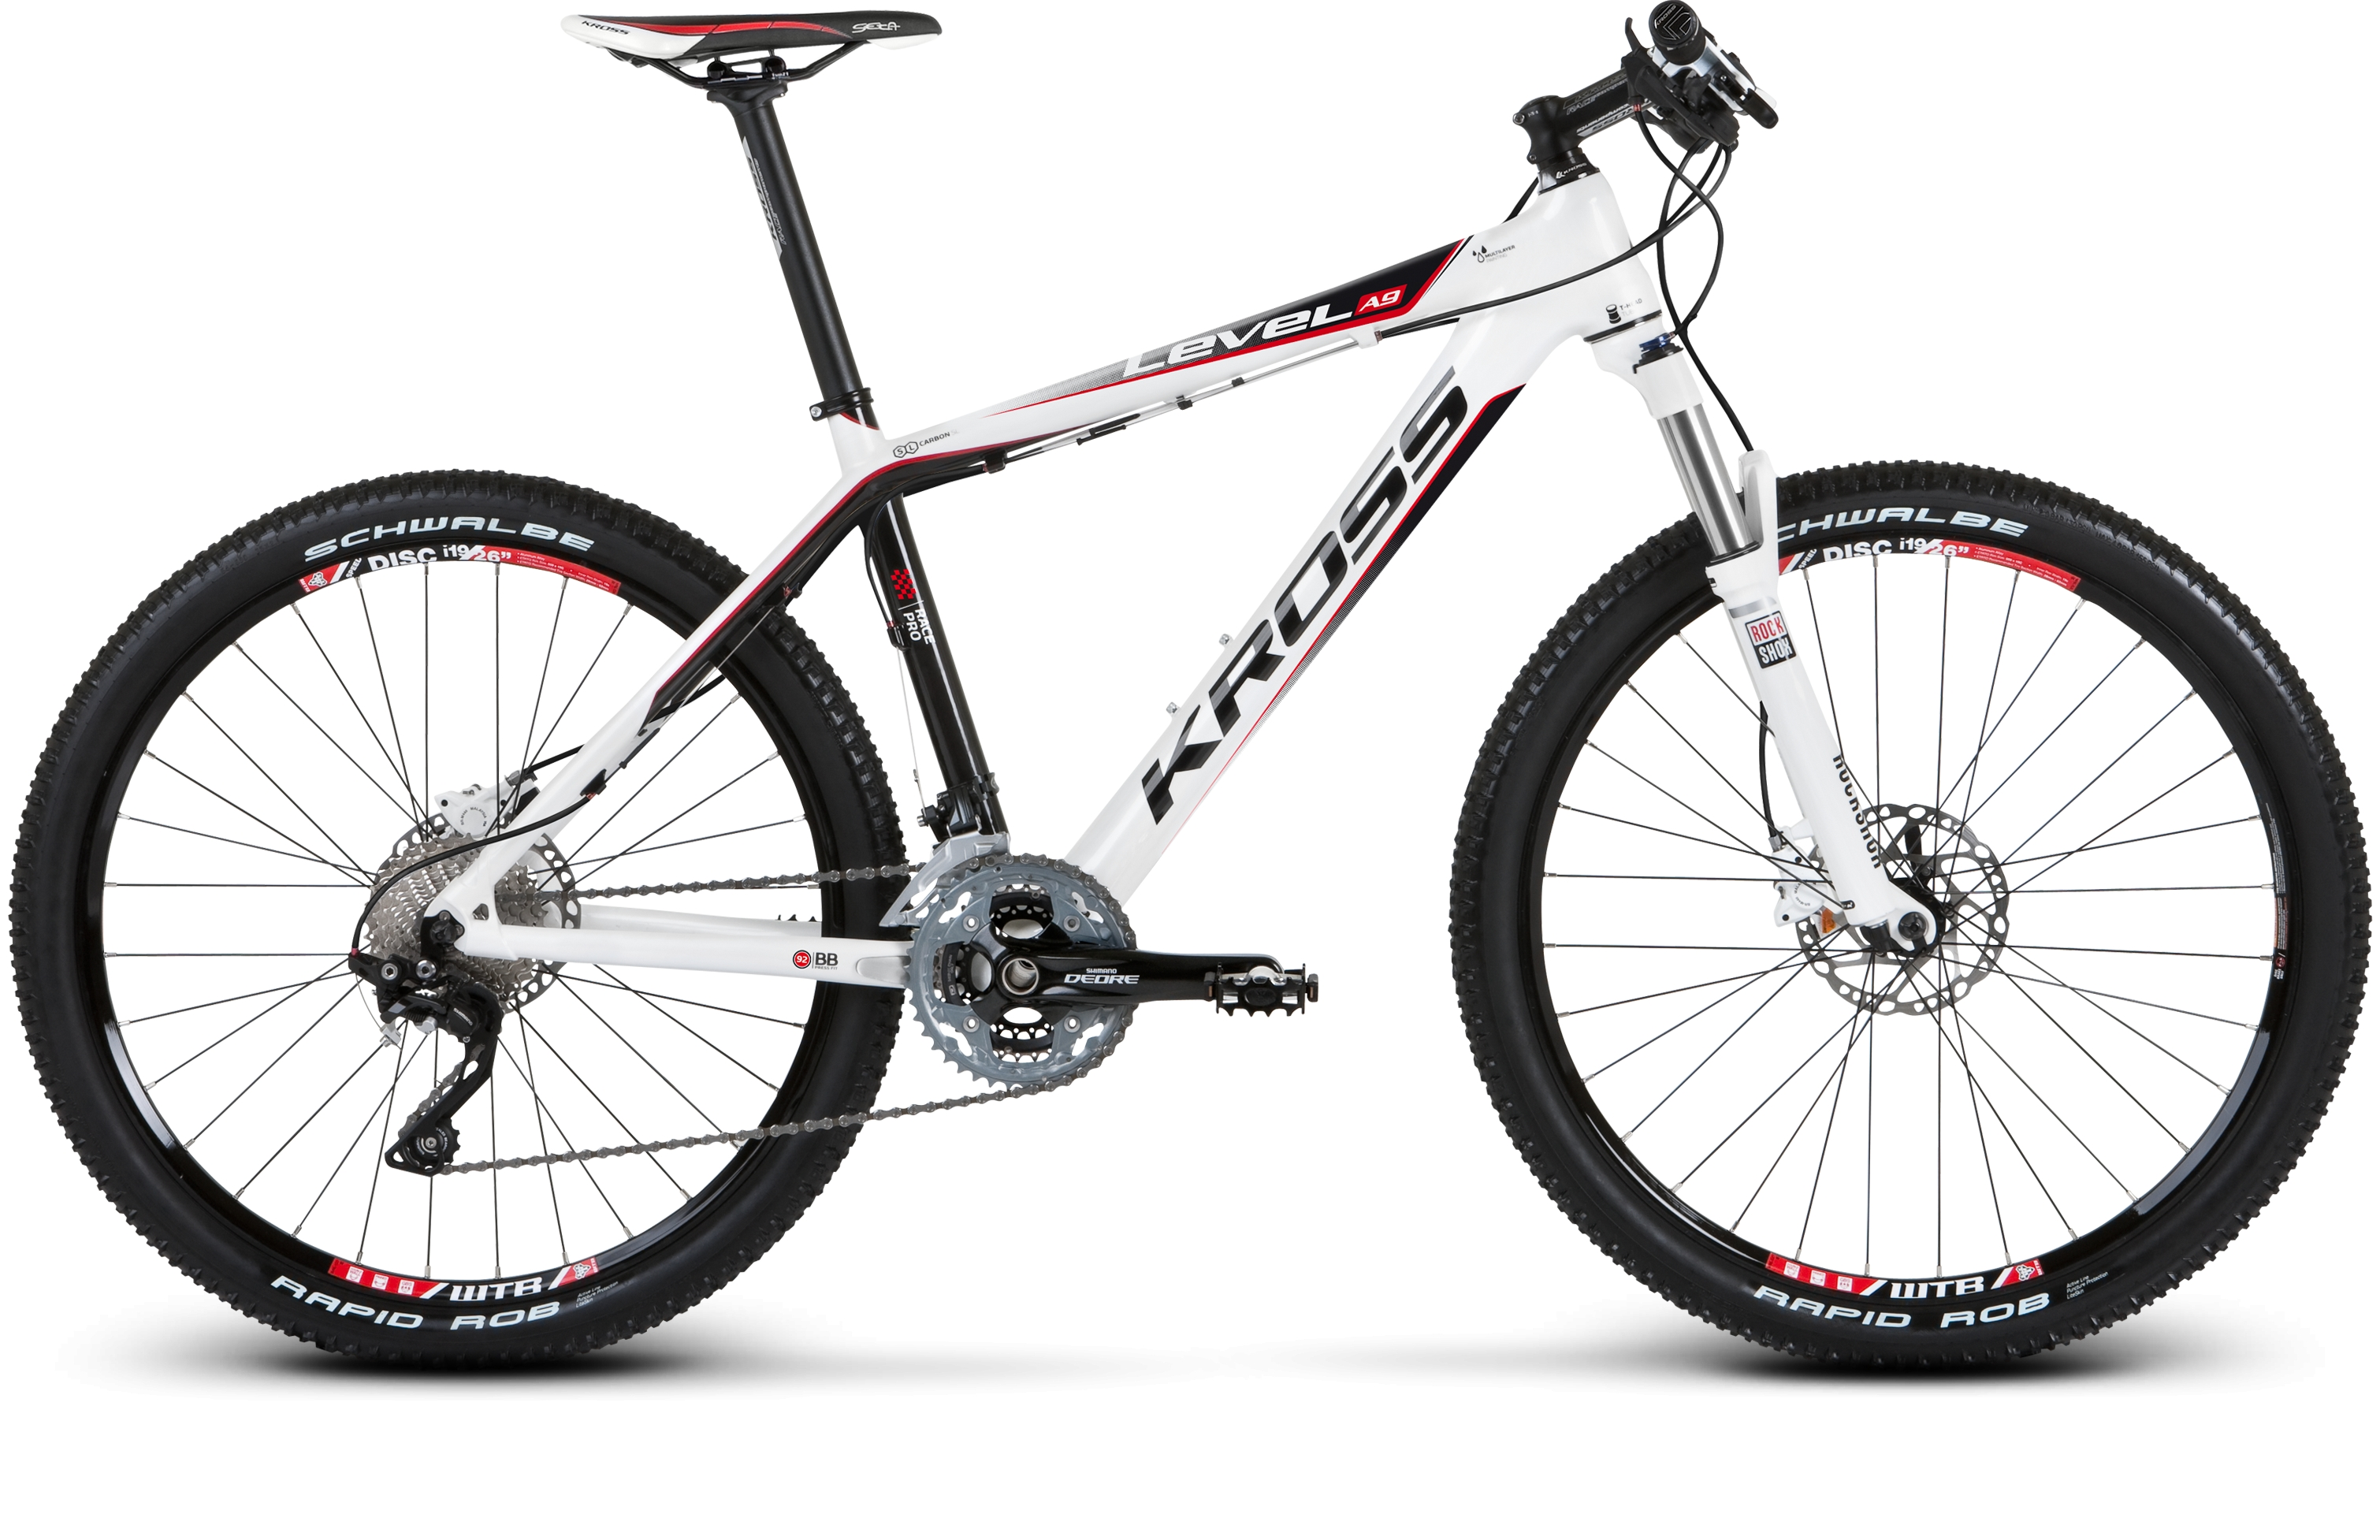 Bike Level A9 | Bikes: Mountain | MTB XC